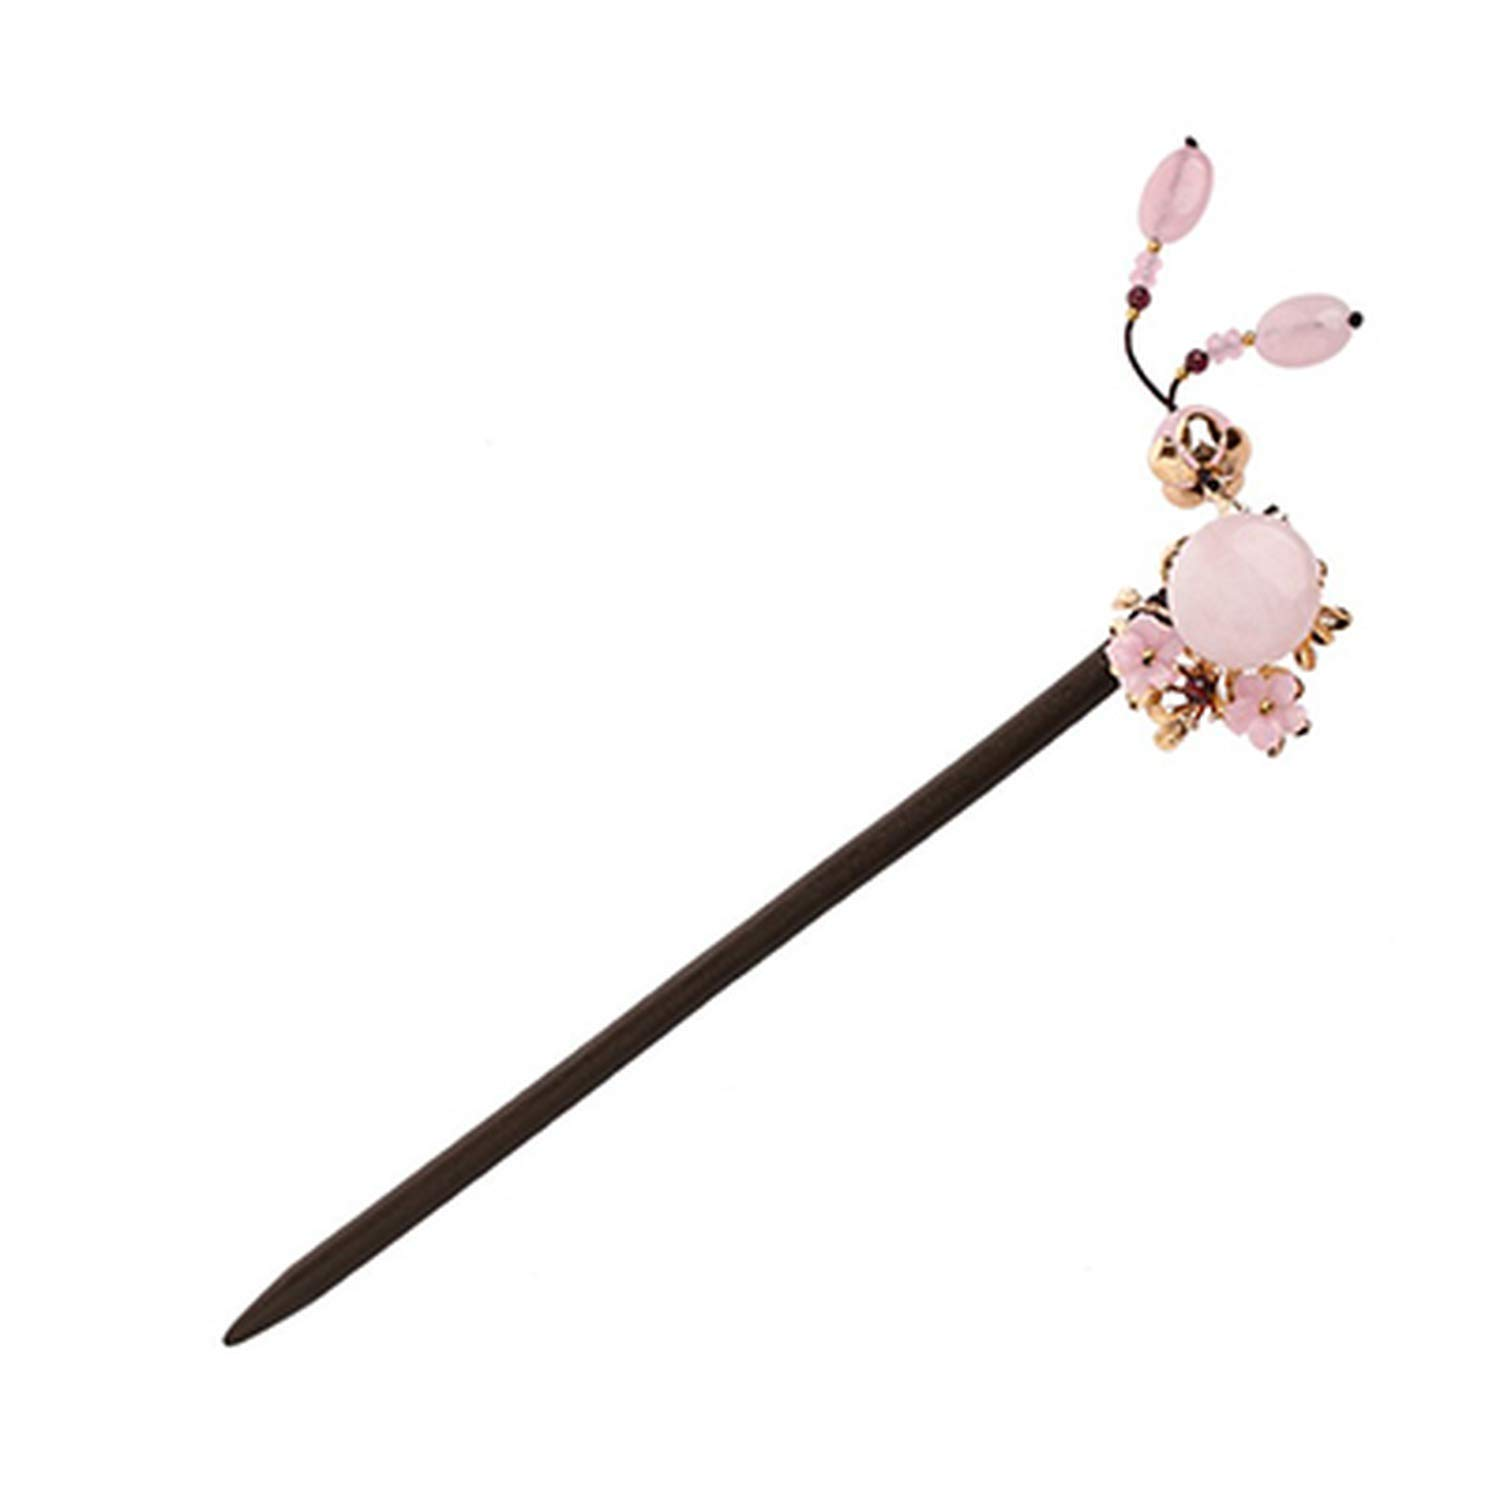 Hair Charm Pink Accessories woman Gift Hairpins 18cm Wood,A